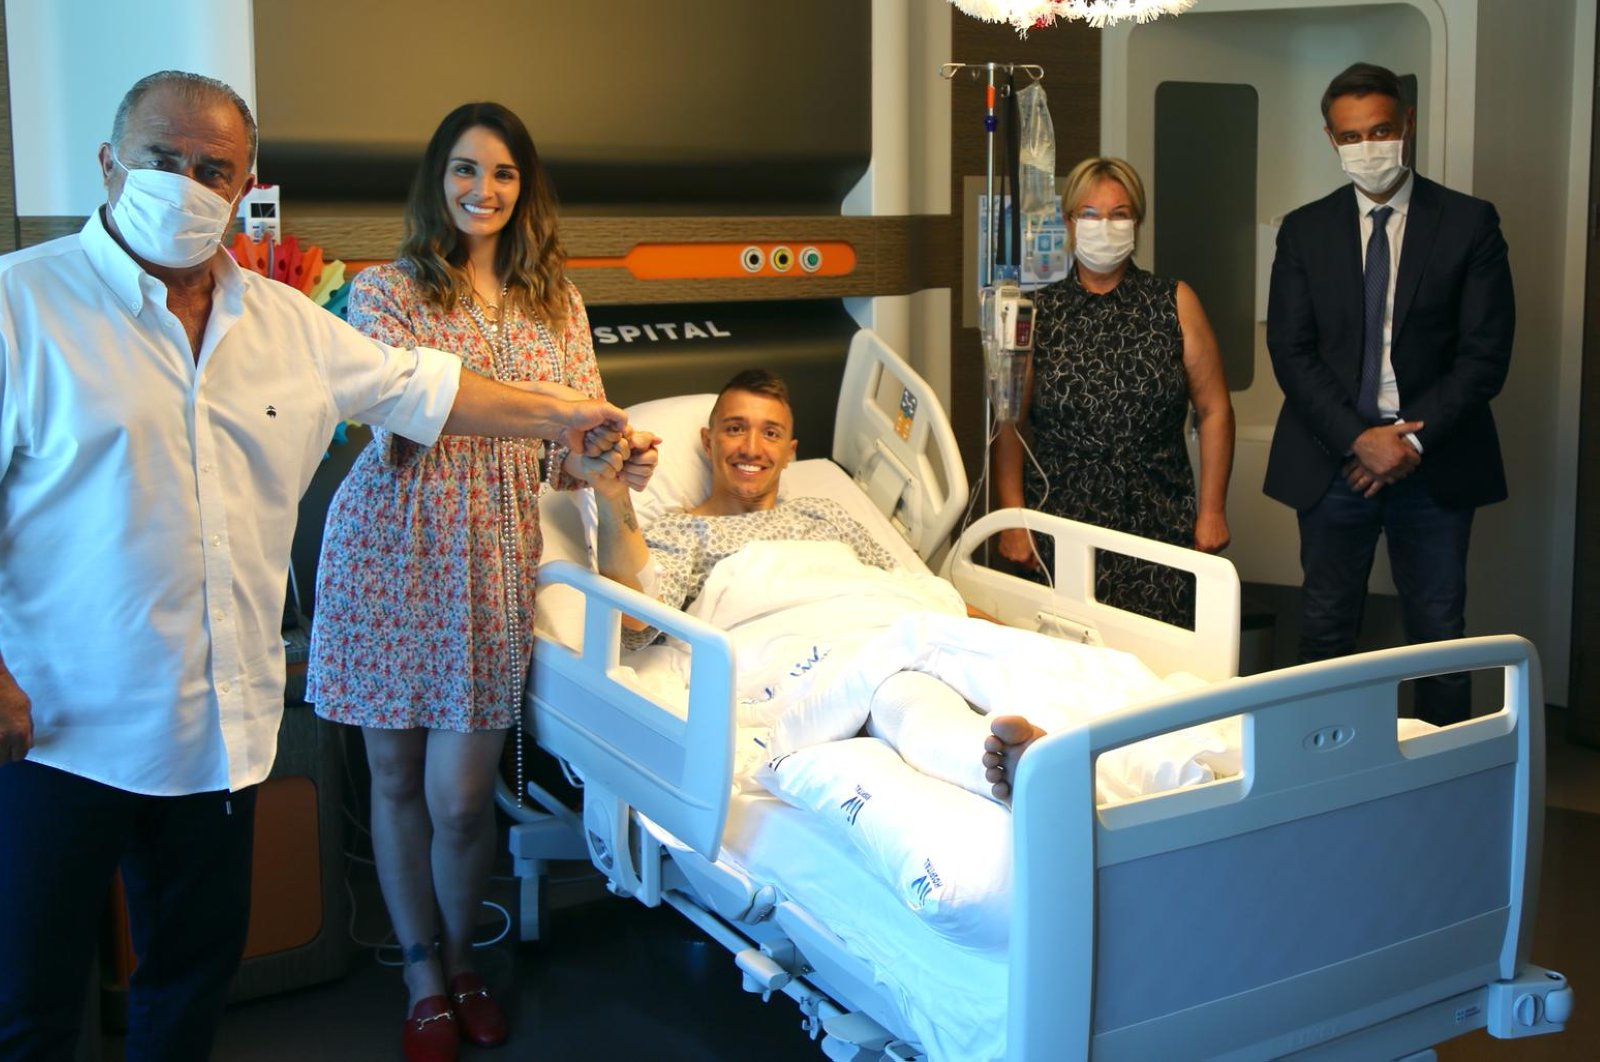 Fernando Muslera (C) poses with his wife Patricia Callero (L) and Galatasaray Coach Fatih Terim (2nd L) after his surgery in Istanbul, Turkey, June 16, 2020. (DHA Photo)